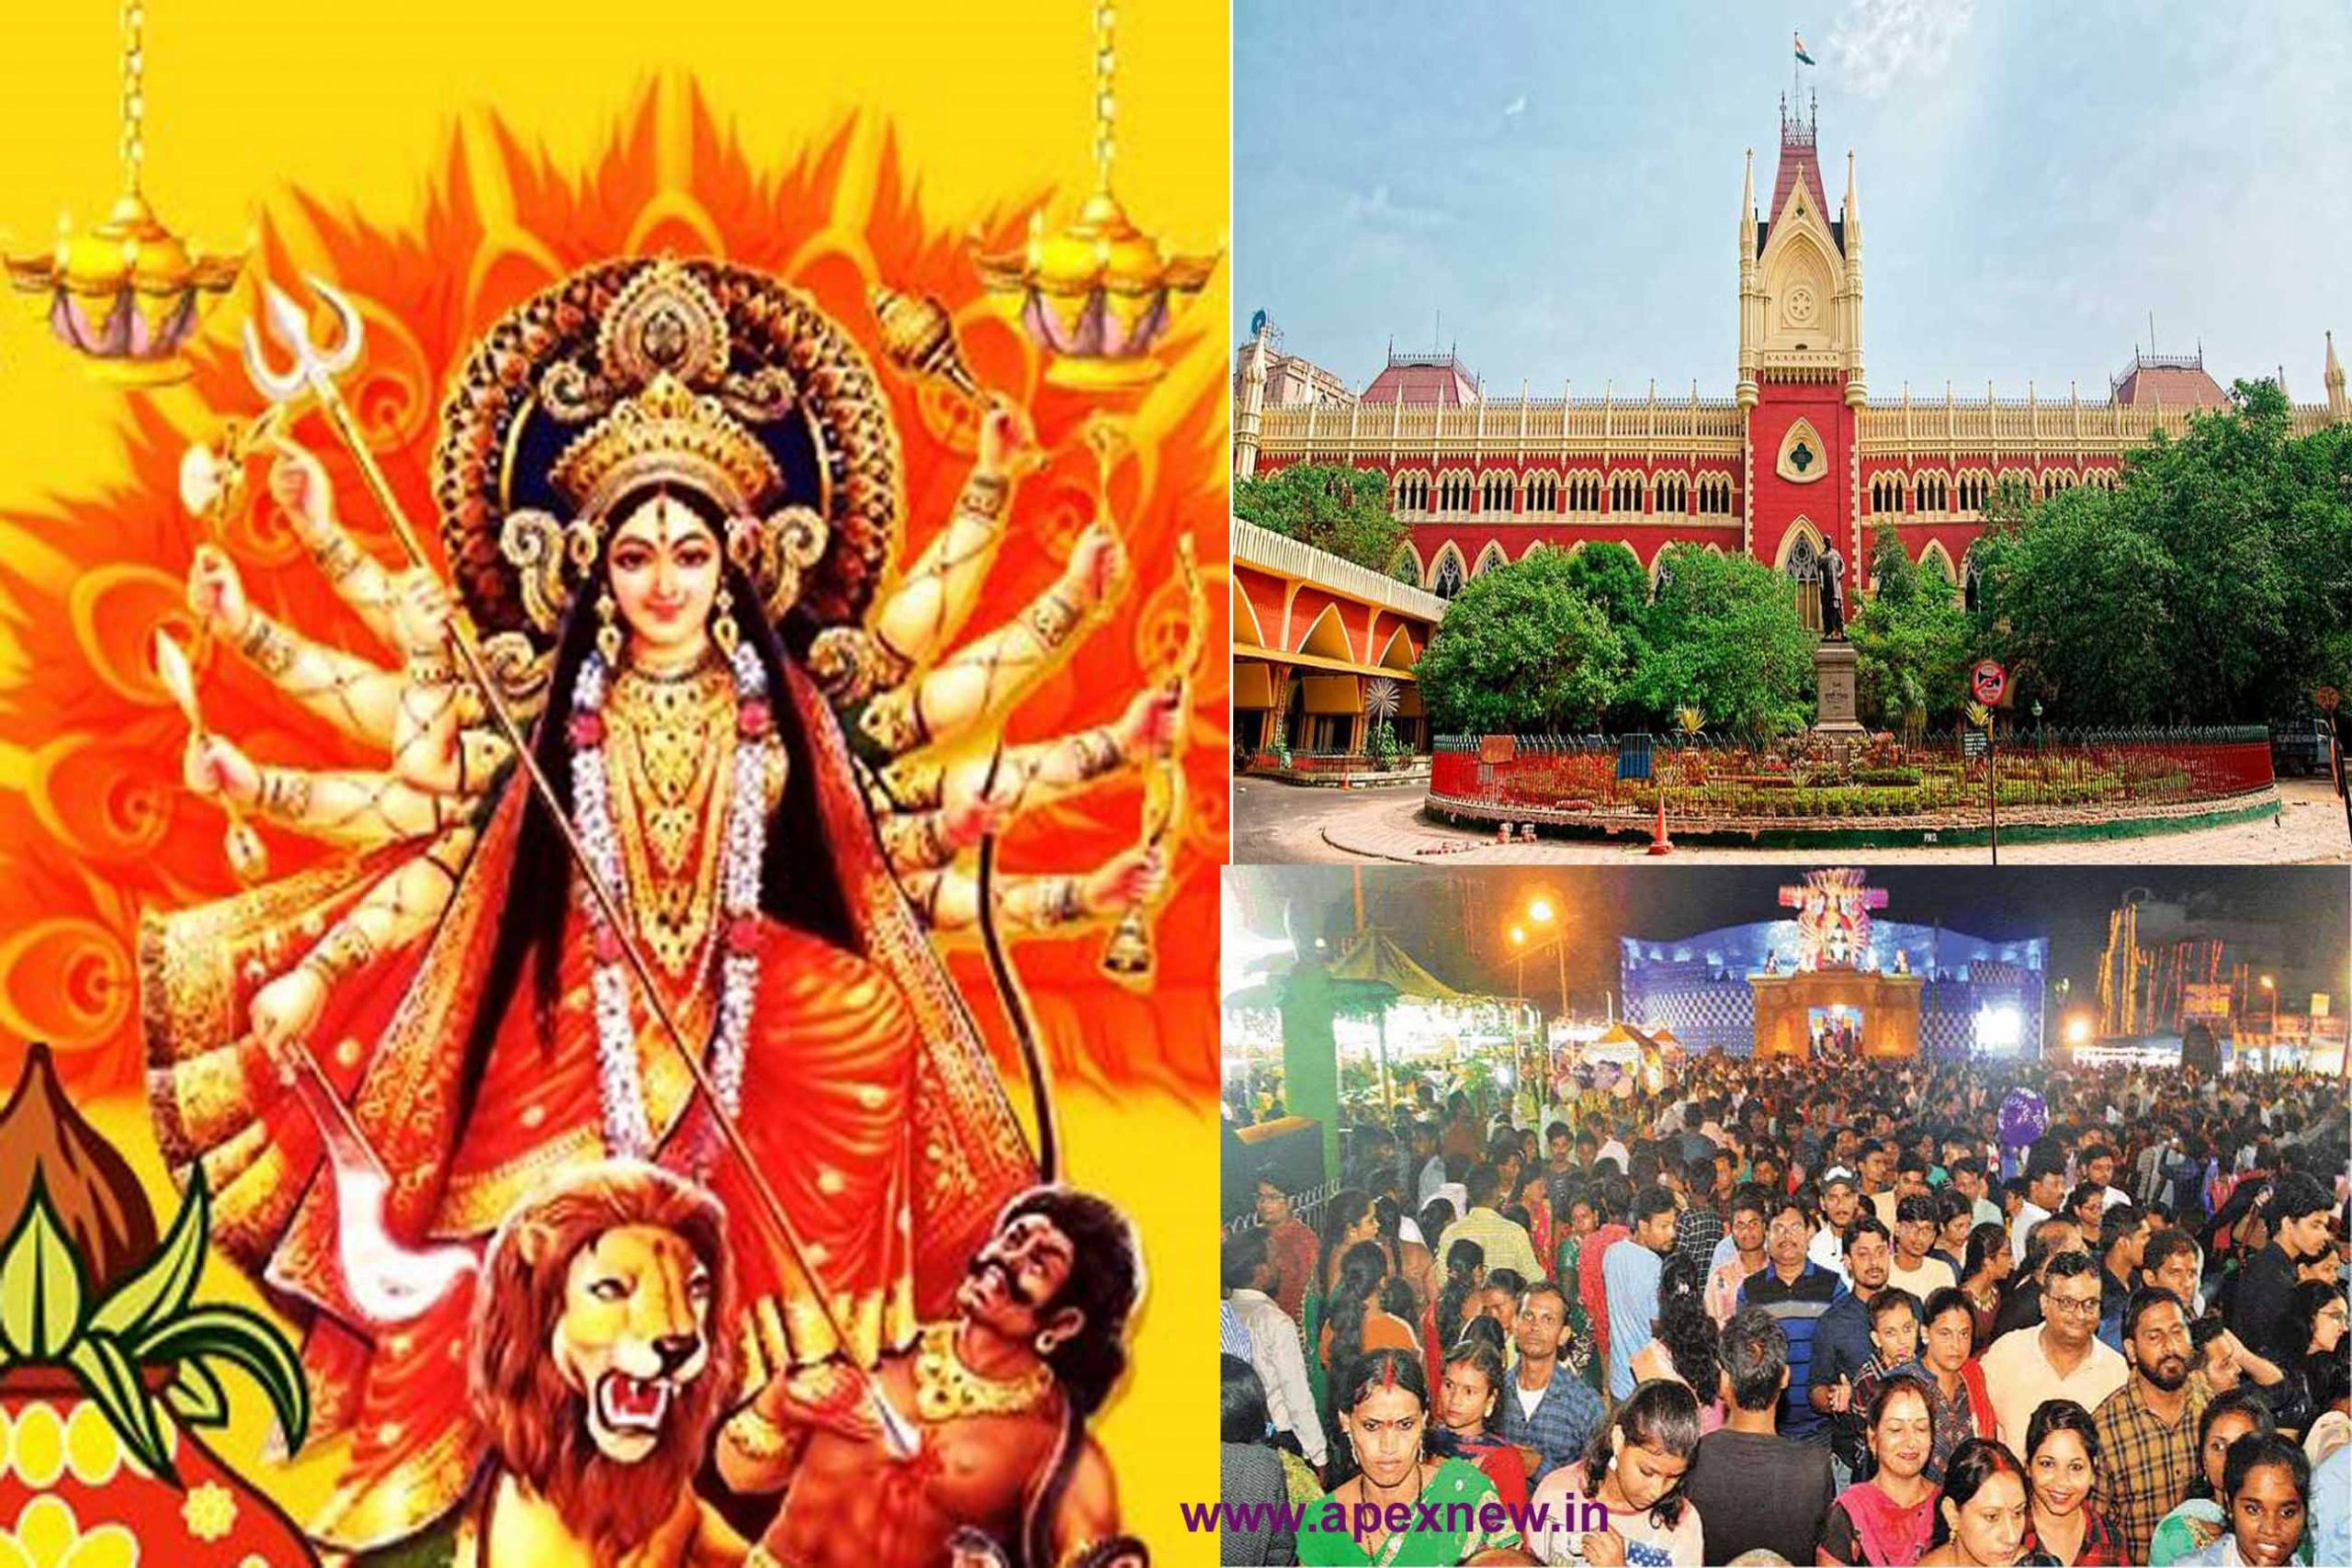 Stop Durga Puja, public interest case in the High Court